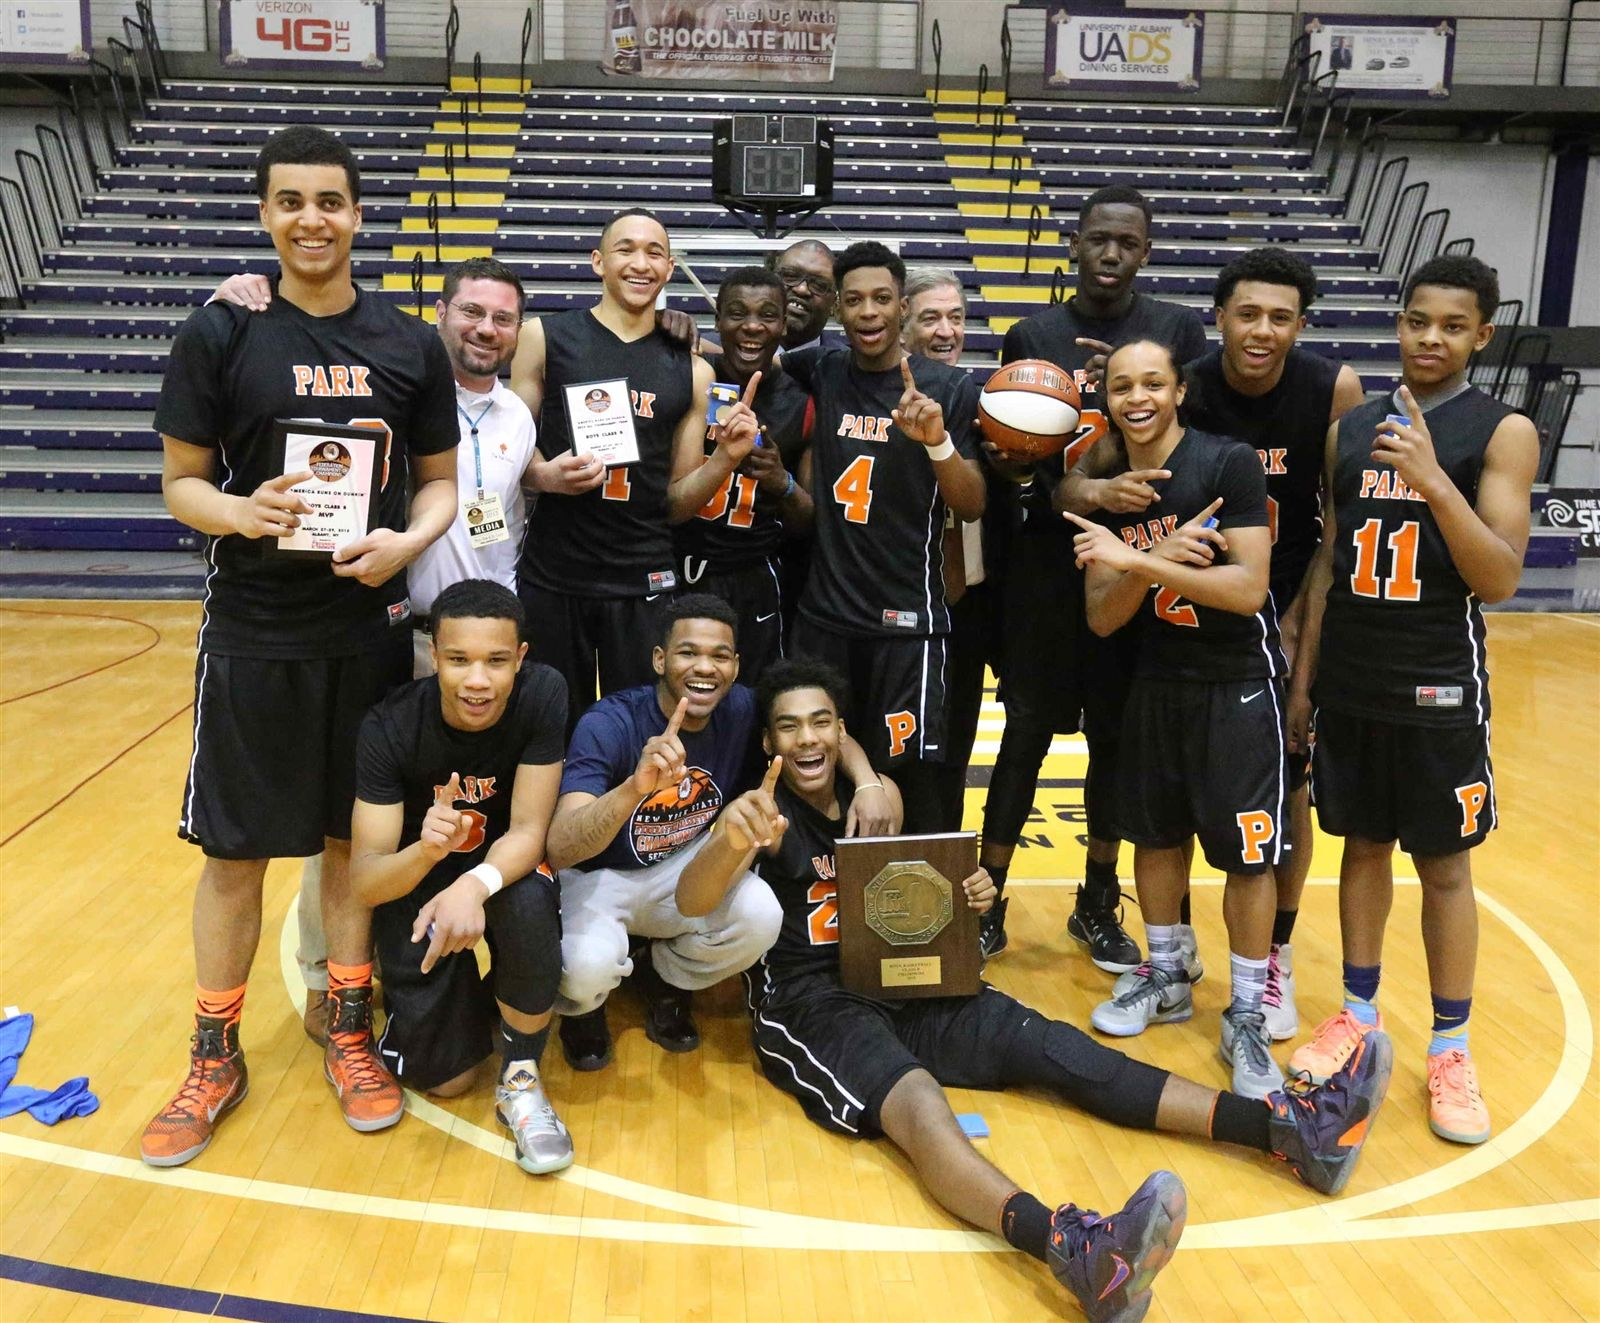 Park School celebrates after beating  Maspeth 70-51 in the Championship game of the NYS Federation Tournament of Champions at SEFCU Arena in Albany, N.Y., on Sunday, March 29, 2015.